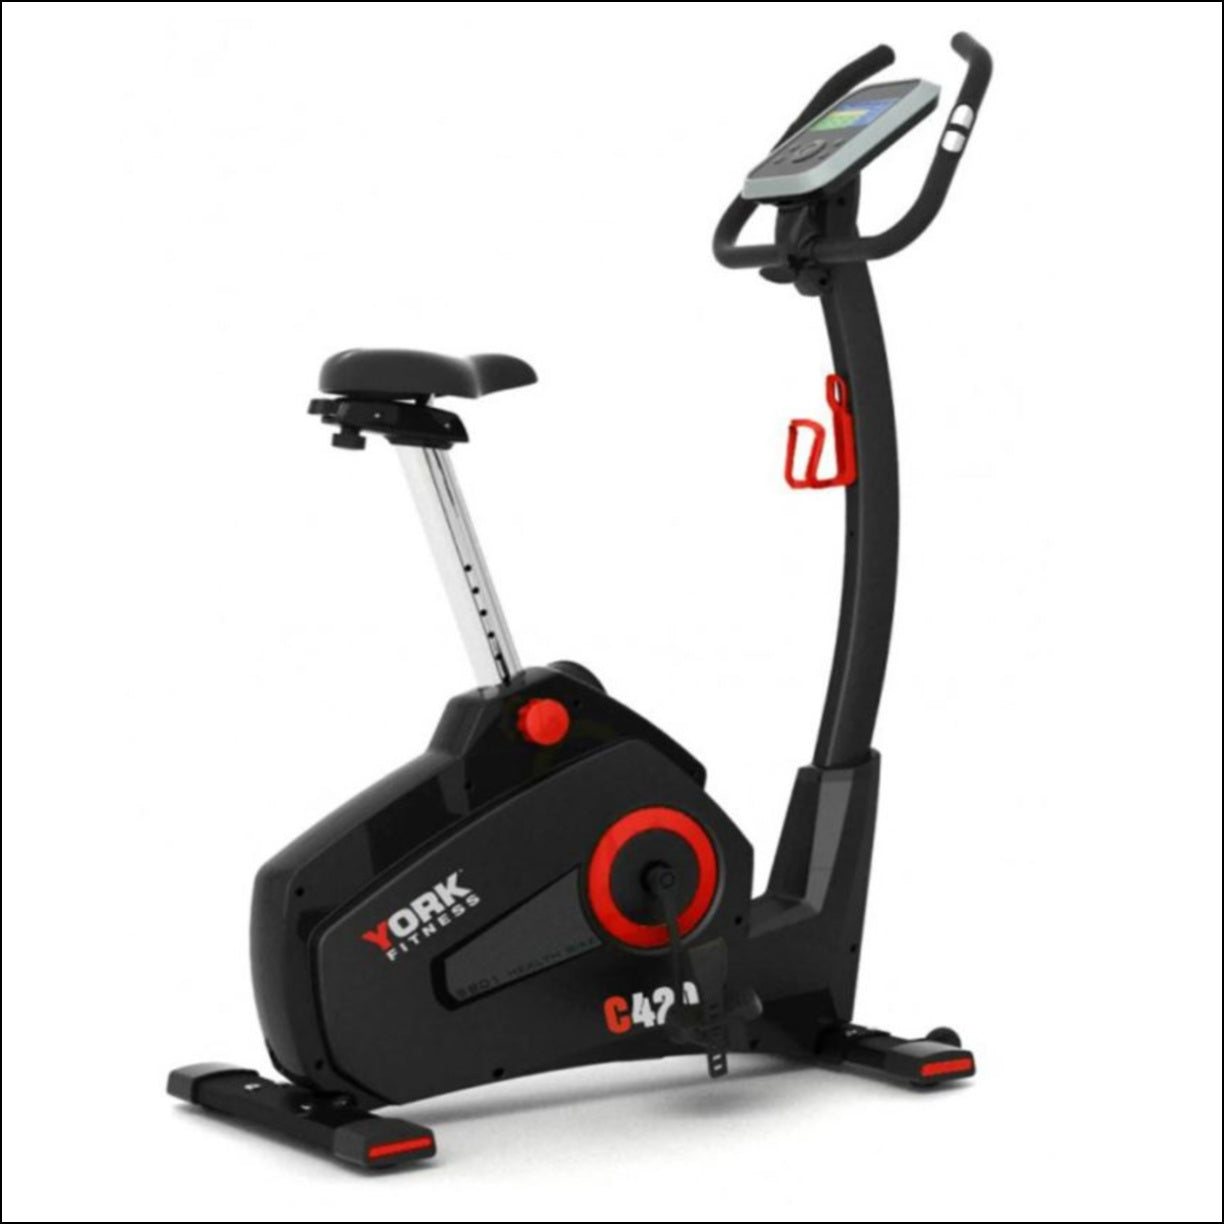 The YORK C420 Exercise Bike is the pinnacle of quality and performance with a touch of class. Its ergonomic design will be sure to impress as well, as a benefit for all users whether completing a long distance session or short intervals during your busy schedule.